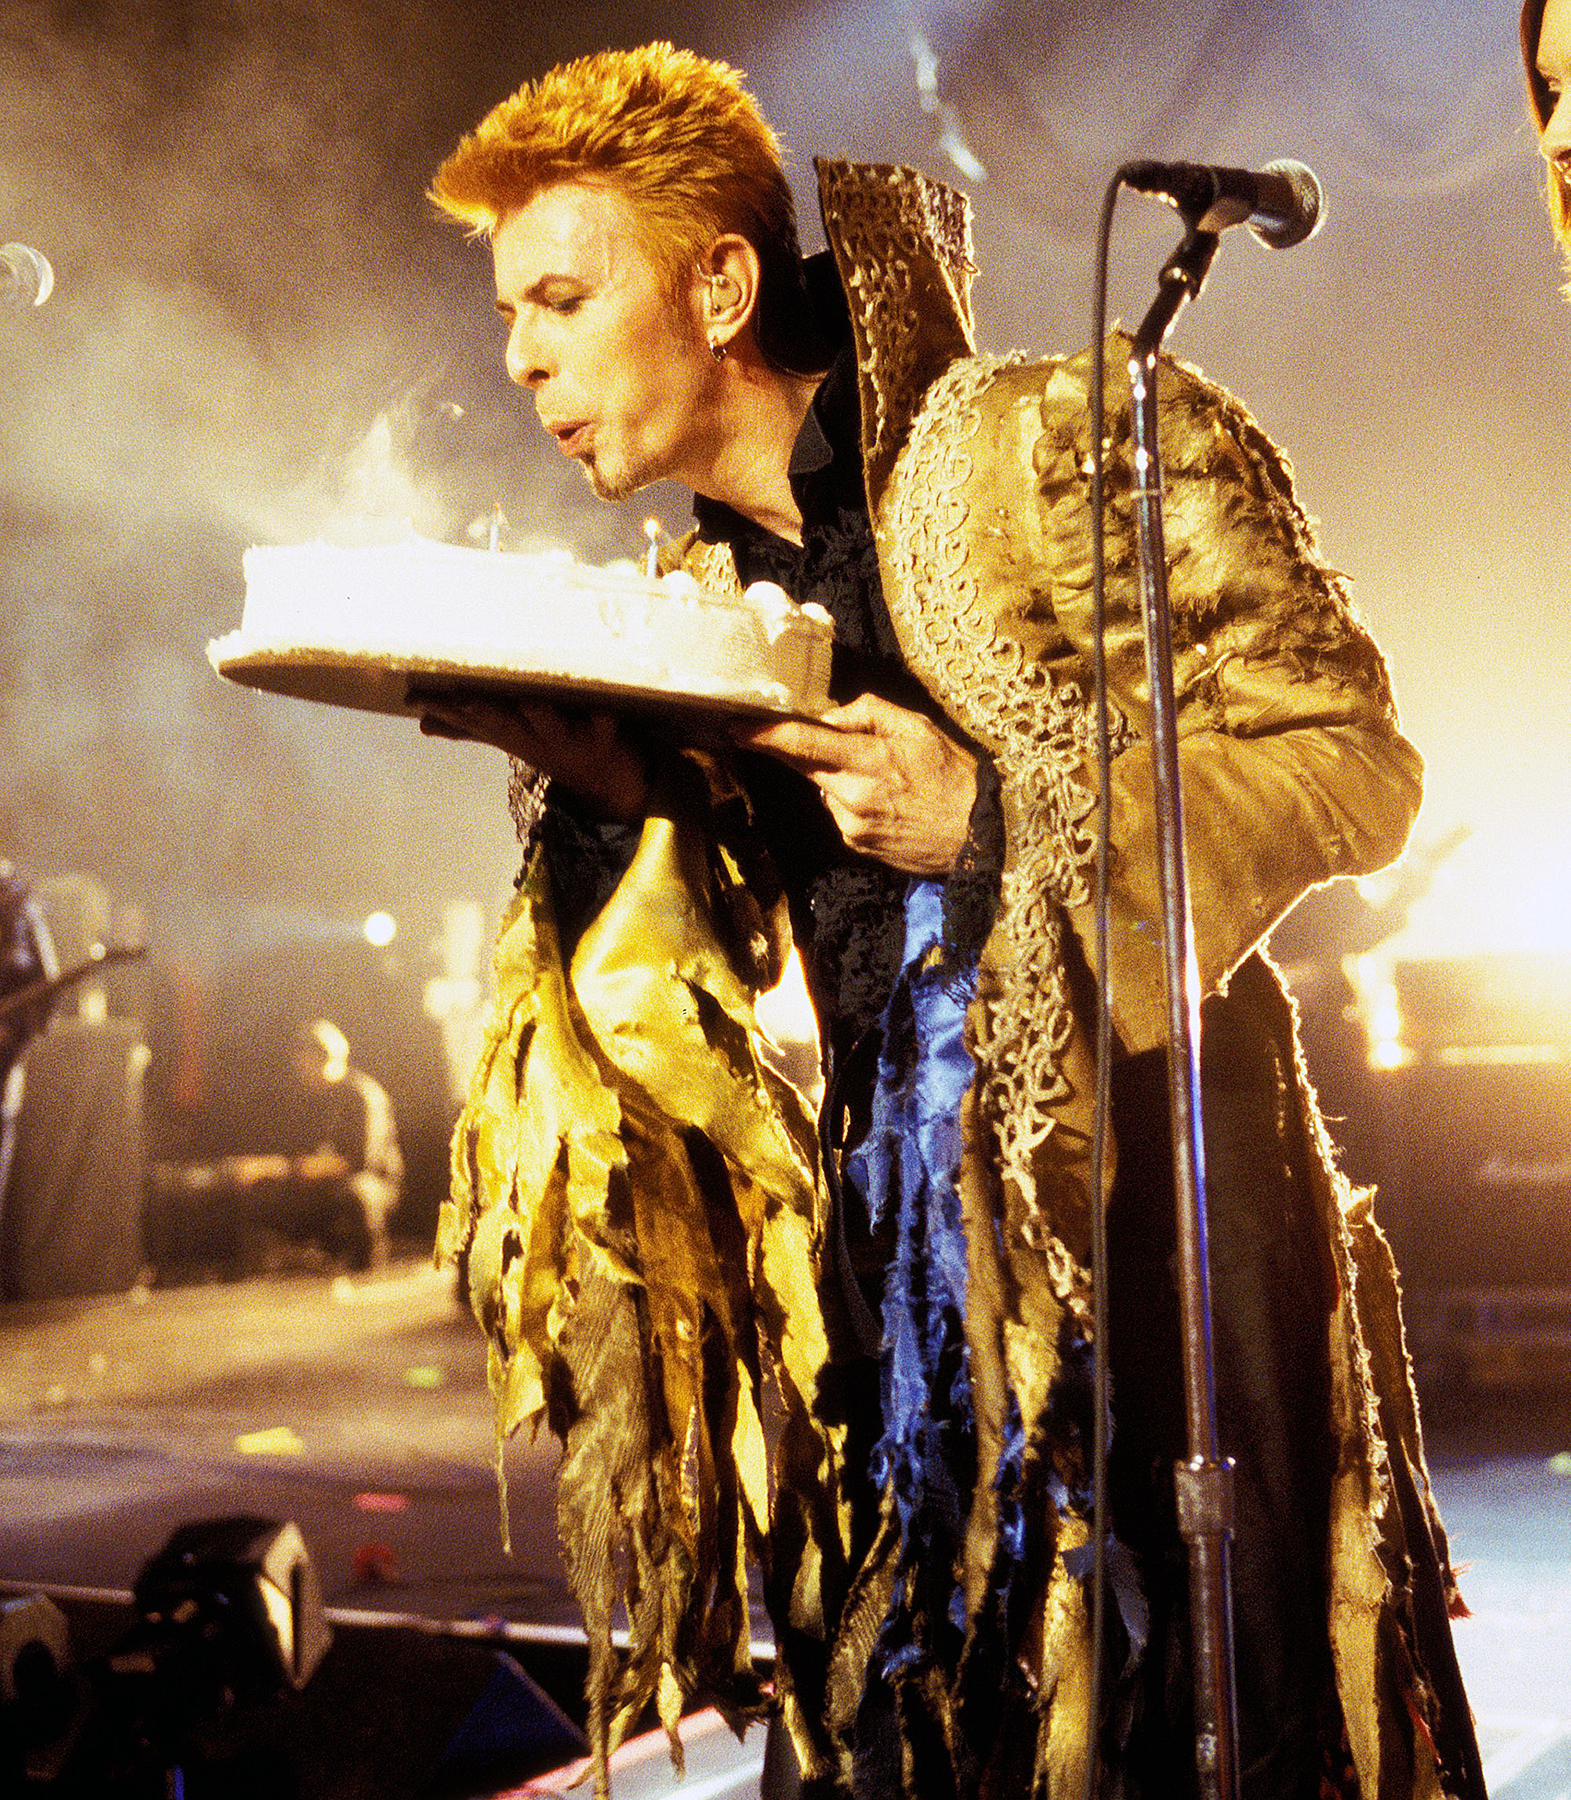 David Bowie's 50th Birthday Celebration Concert at Madison Square Garden in New York City